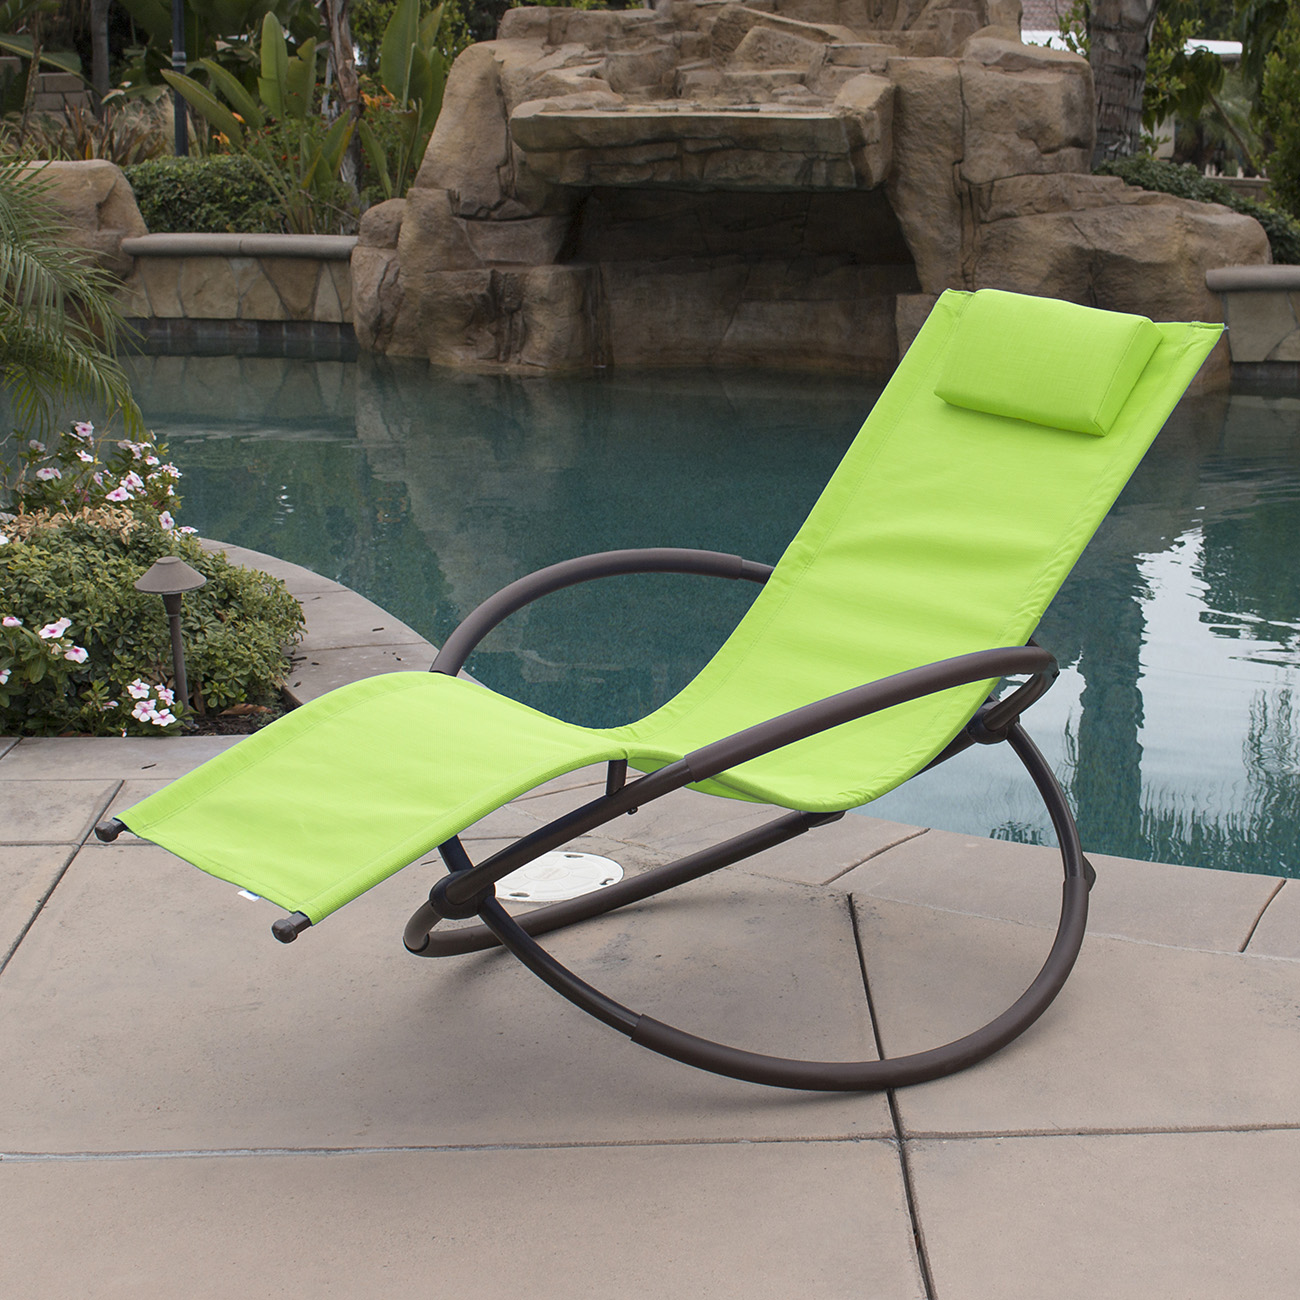 Folding outdoor lounge chair - 7 Color Orbital Zero Anti Gravity Lounge Chair